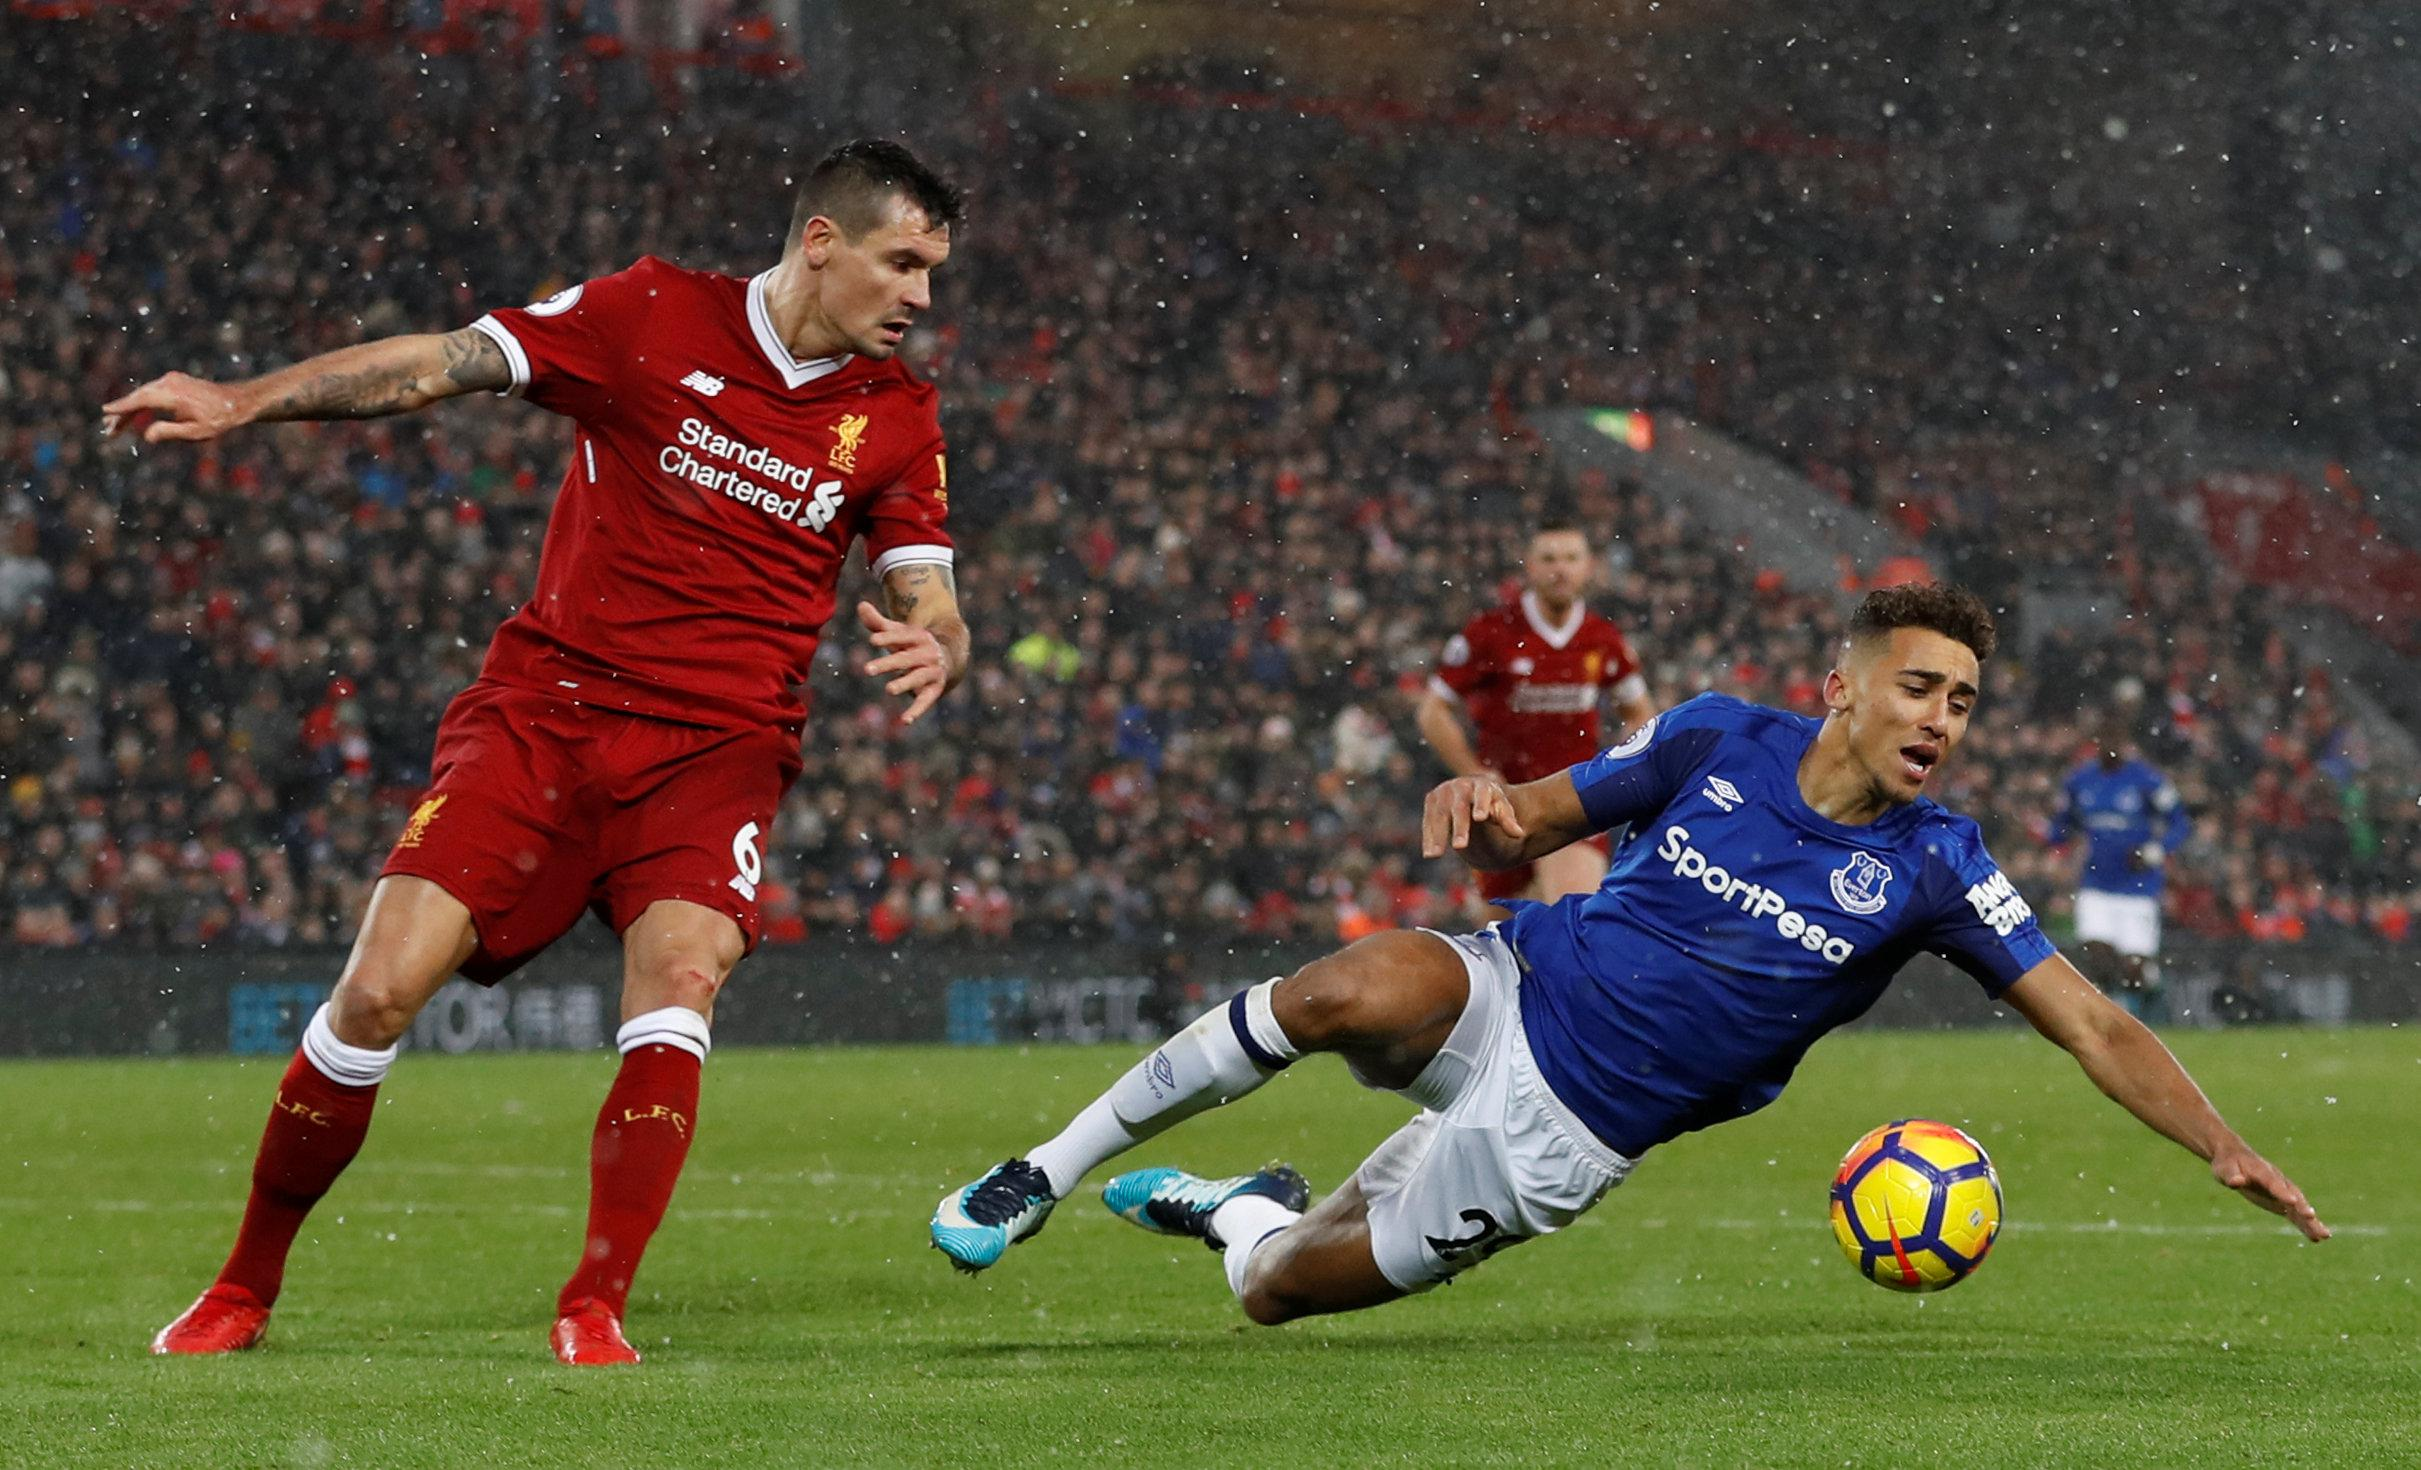 Lovren was adjudged to have fouled Calvert-Lewin